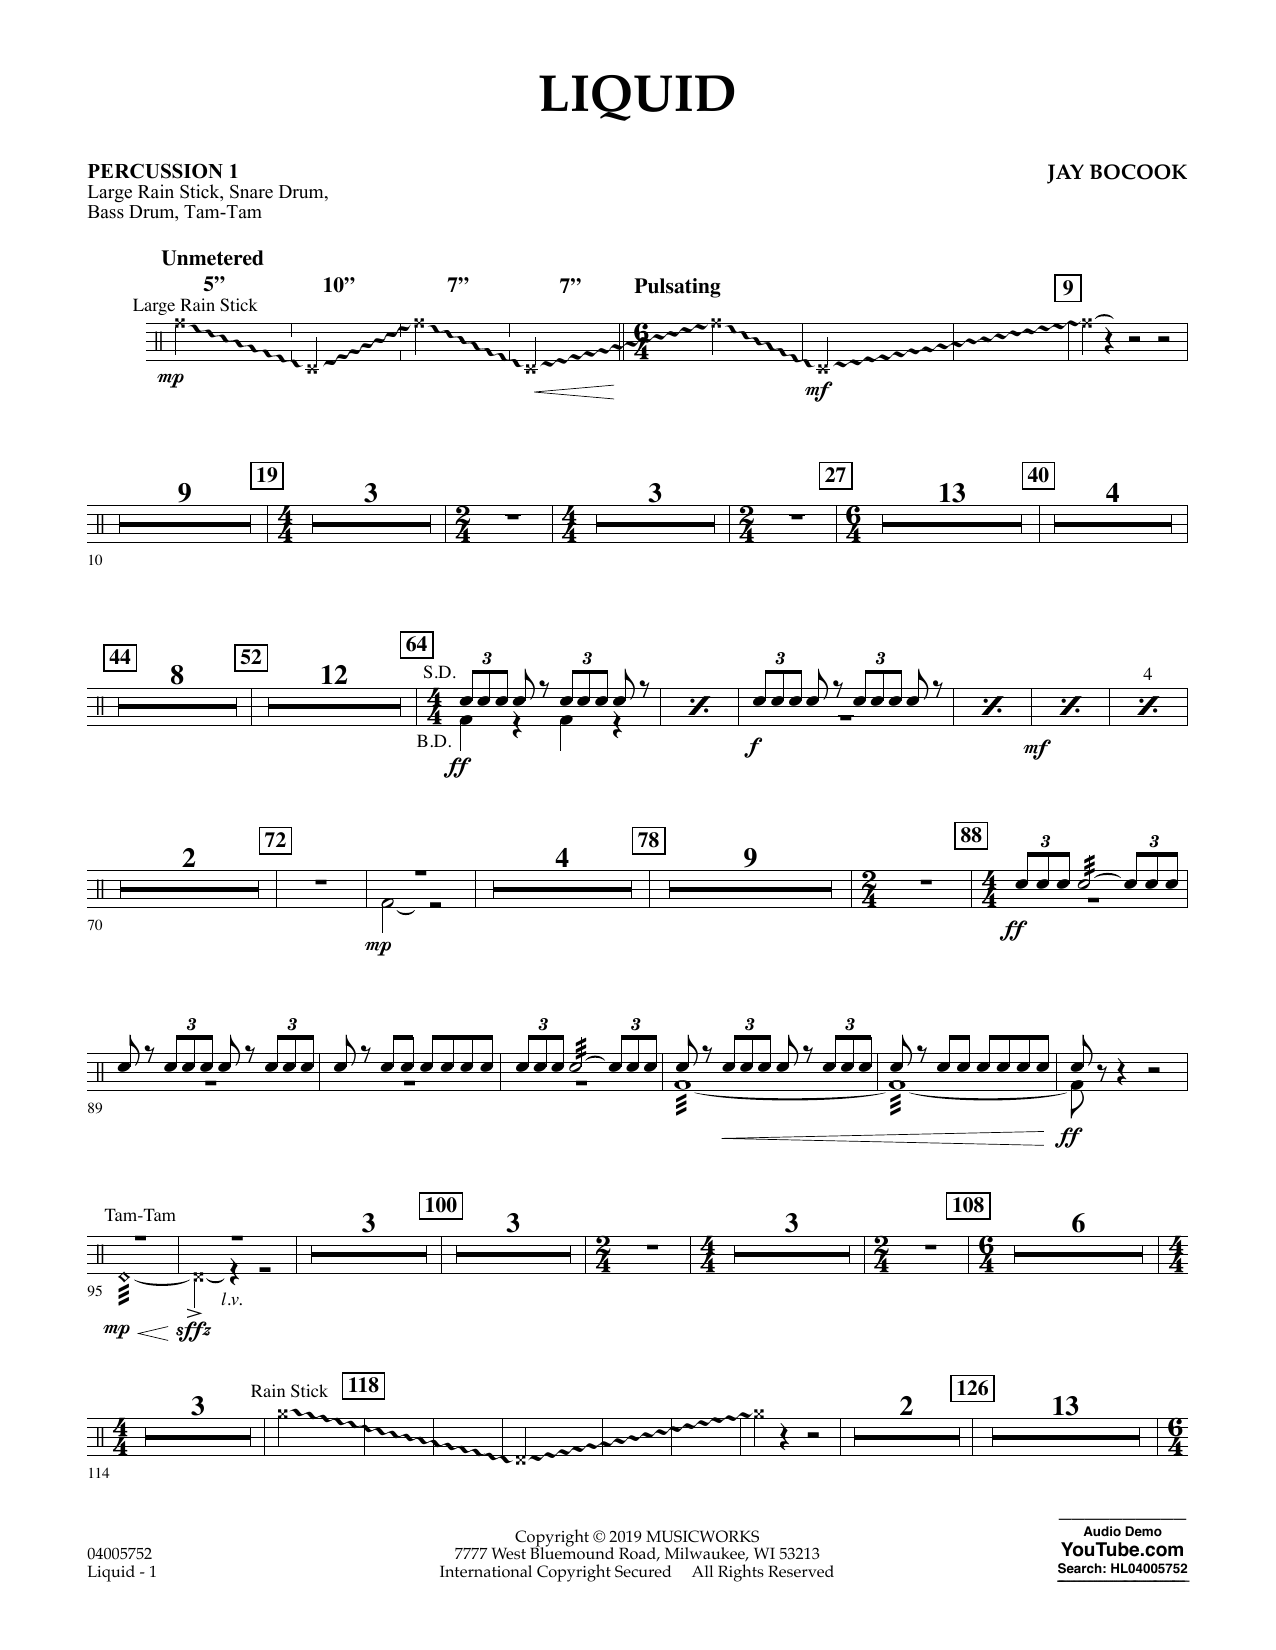 Jay Bocook Liquid - Percussion 1 sheet music preview music notes and score for Concert Band including 2 page(s)